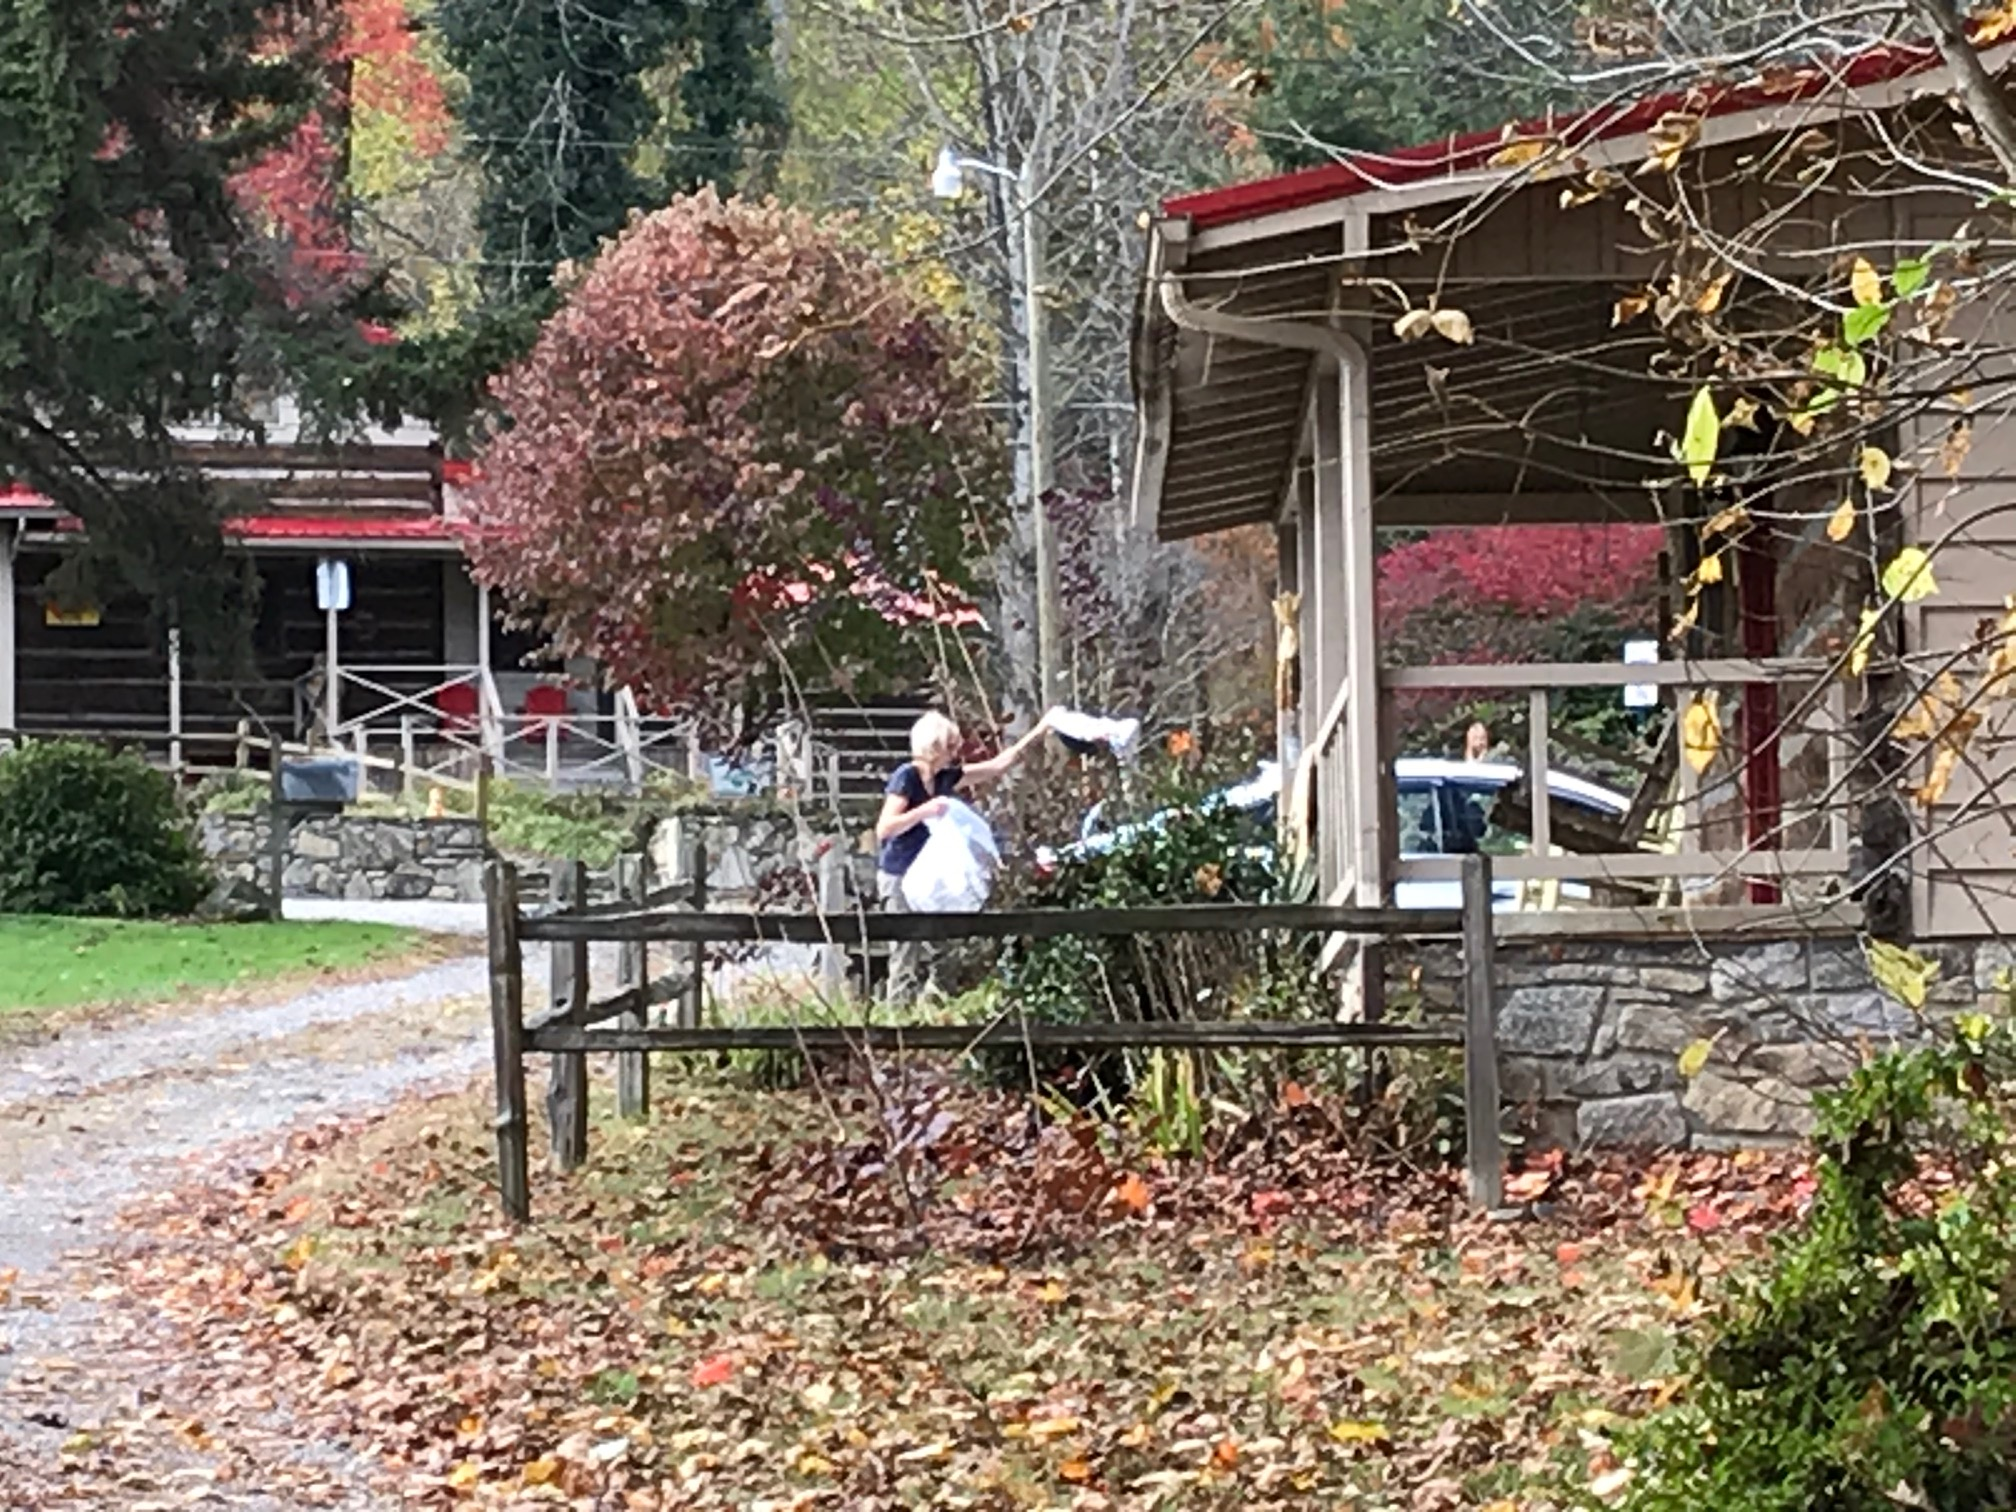 "<p>During the pandemic the Haywood County Visitors Center is promoting an ""Embrace Unusual"" campaign, letting folks know they can come to a place like this and enjoy the great outdoors and still keep a lot of social distance. (Photo credit: WLOS Staff)</p>"